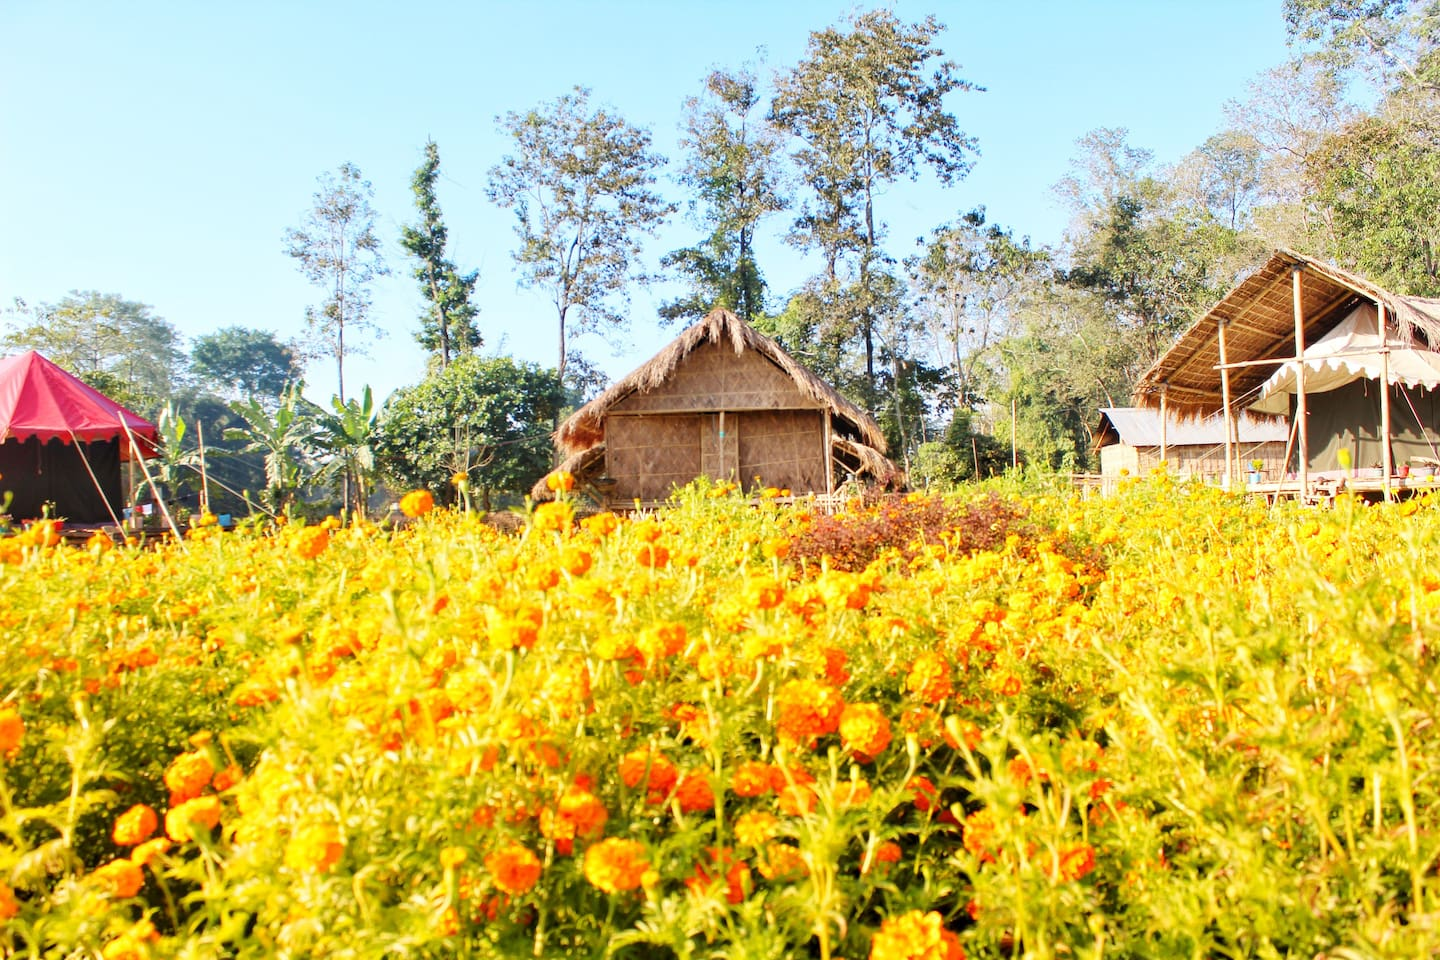 Bamboo and  swiss cottages with the merrygold garden